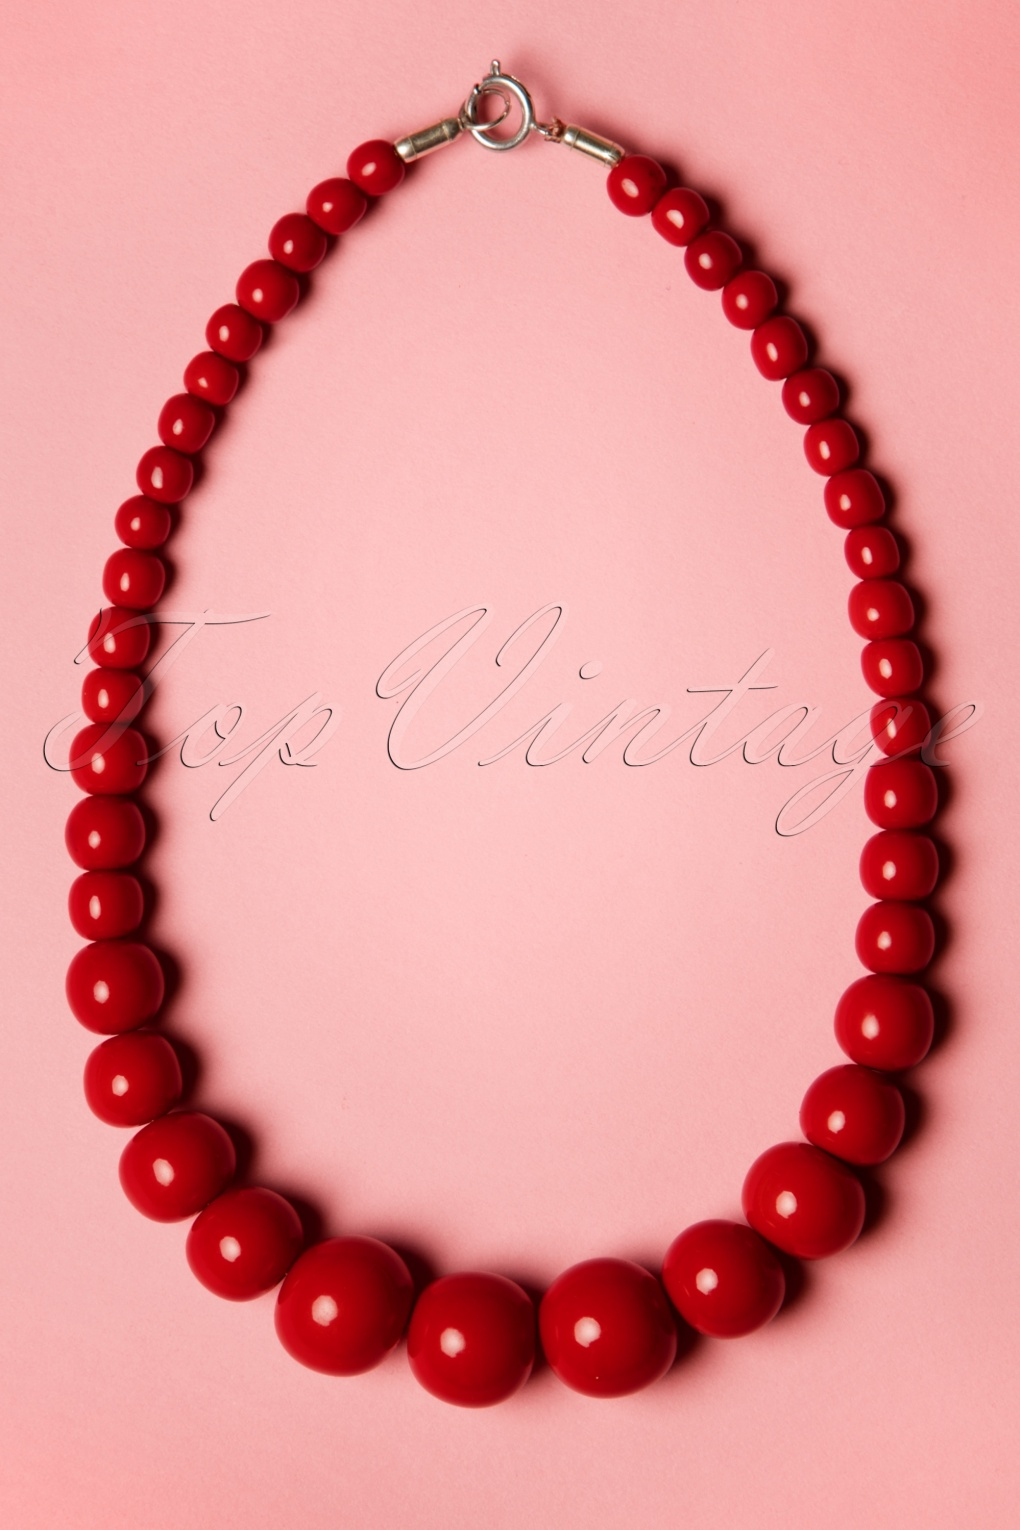 New 1940s Costume Jewelry: Necklaces, Earrings, Pins TopVintage Exclusive  50s Gwendolyn Pearl Necklace in Red £11.37 AT vintagedancer.com